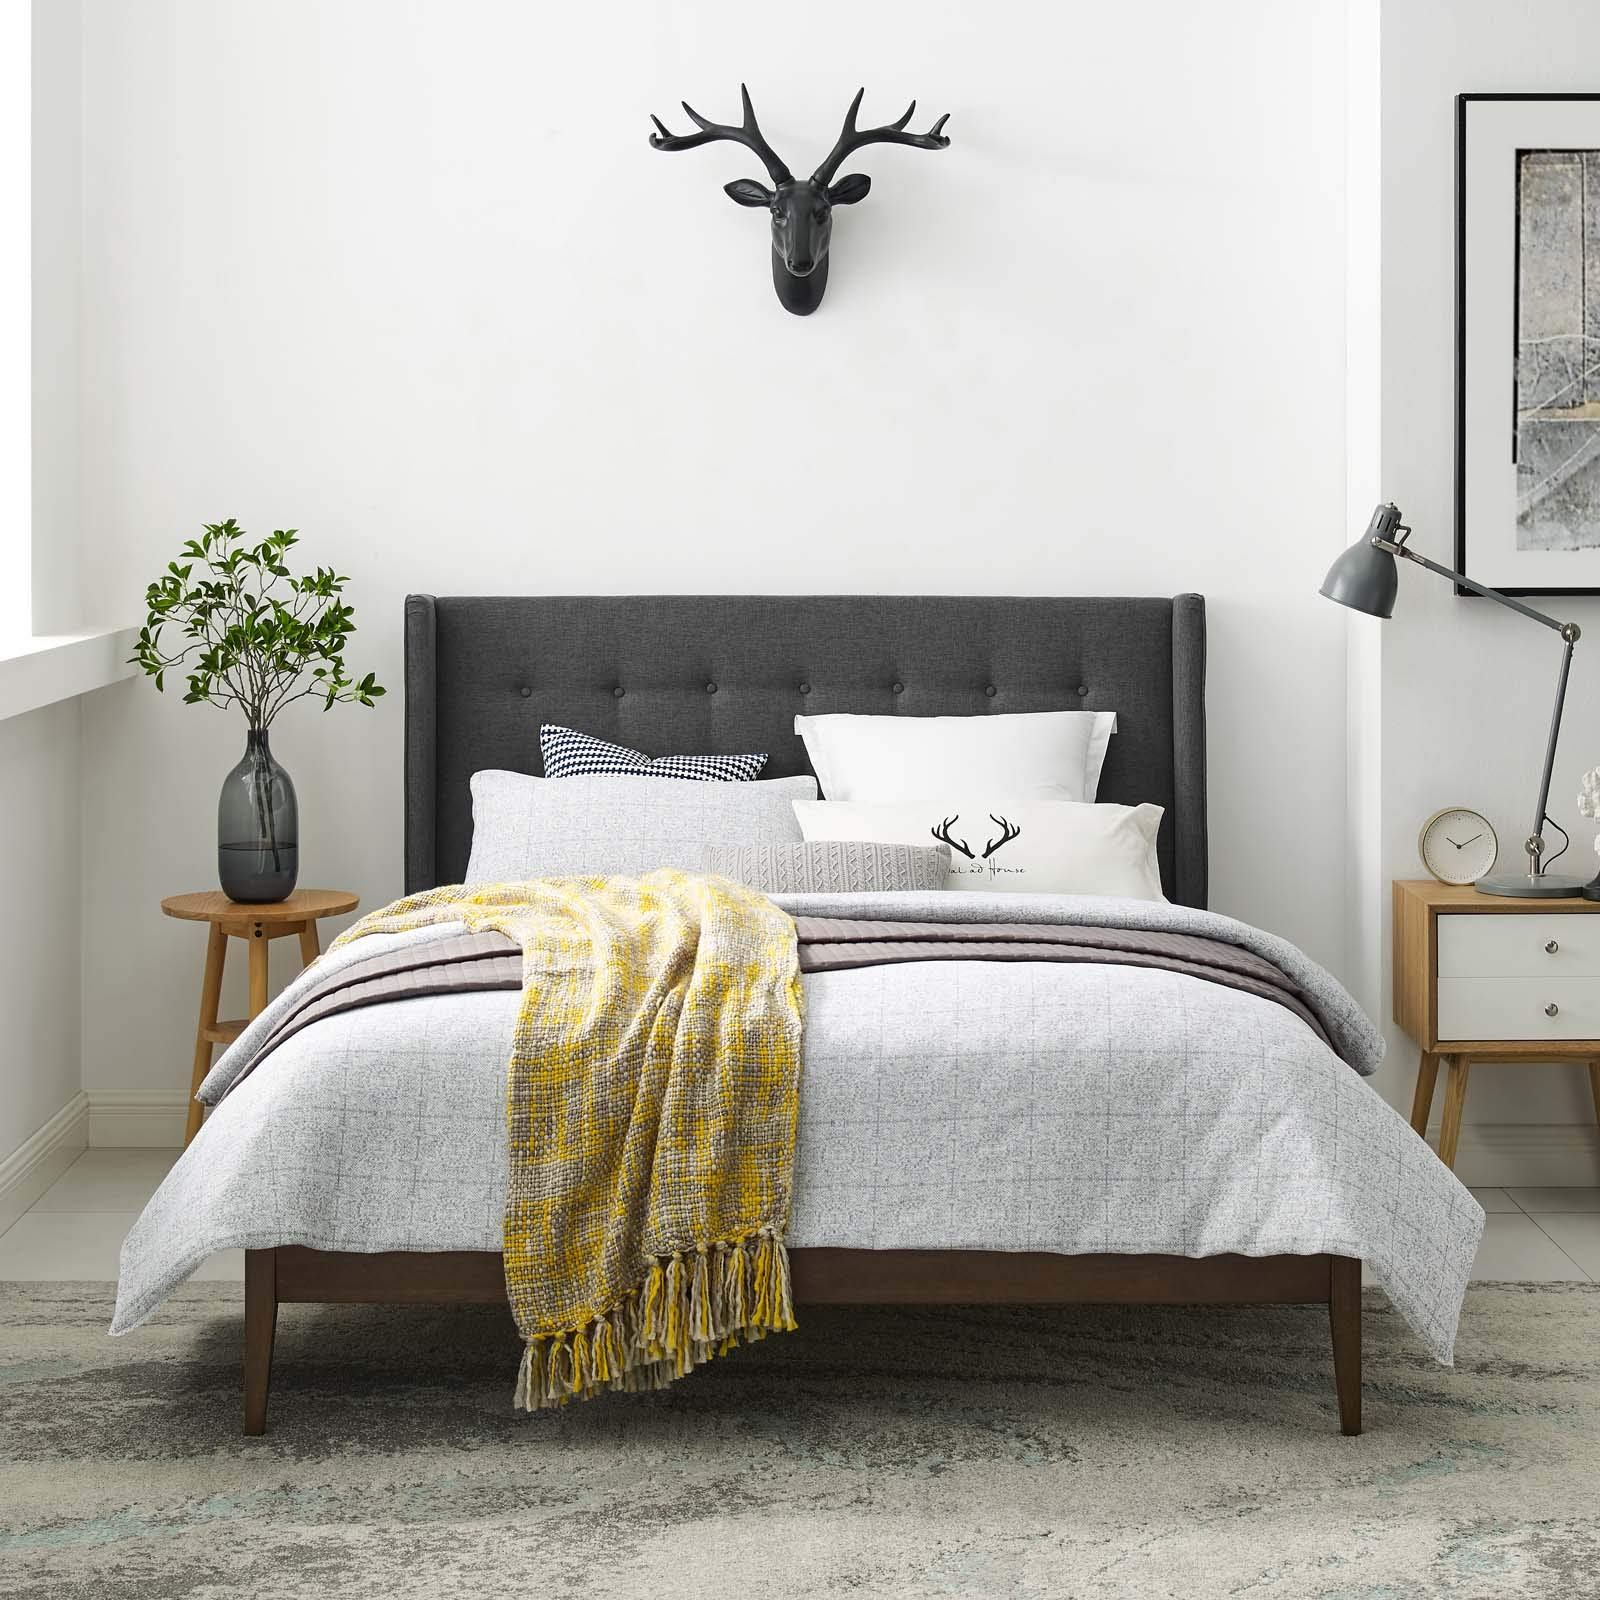 Modway MOD-6003-GRY Hadley Queen Wingback Upholstered Polyester Fabric Platform Bed, Gray